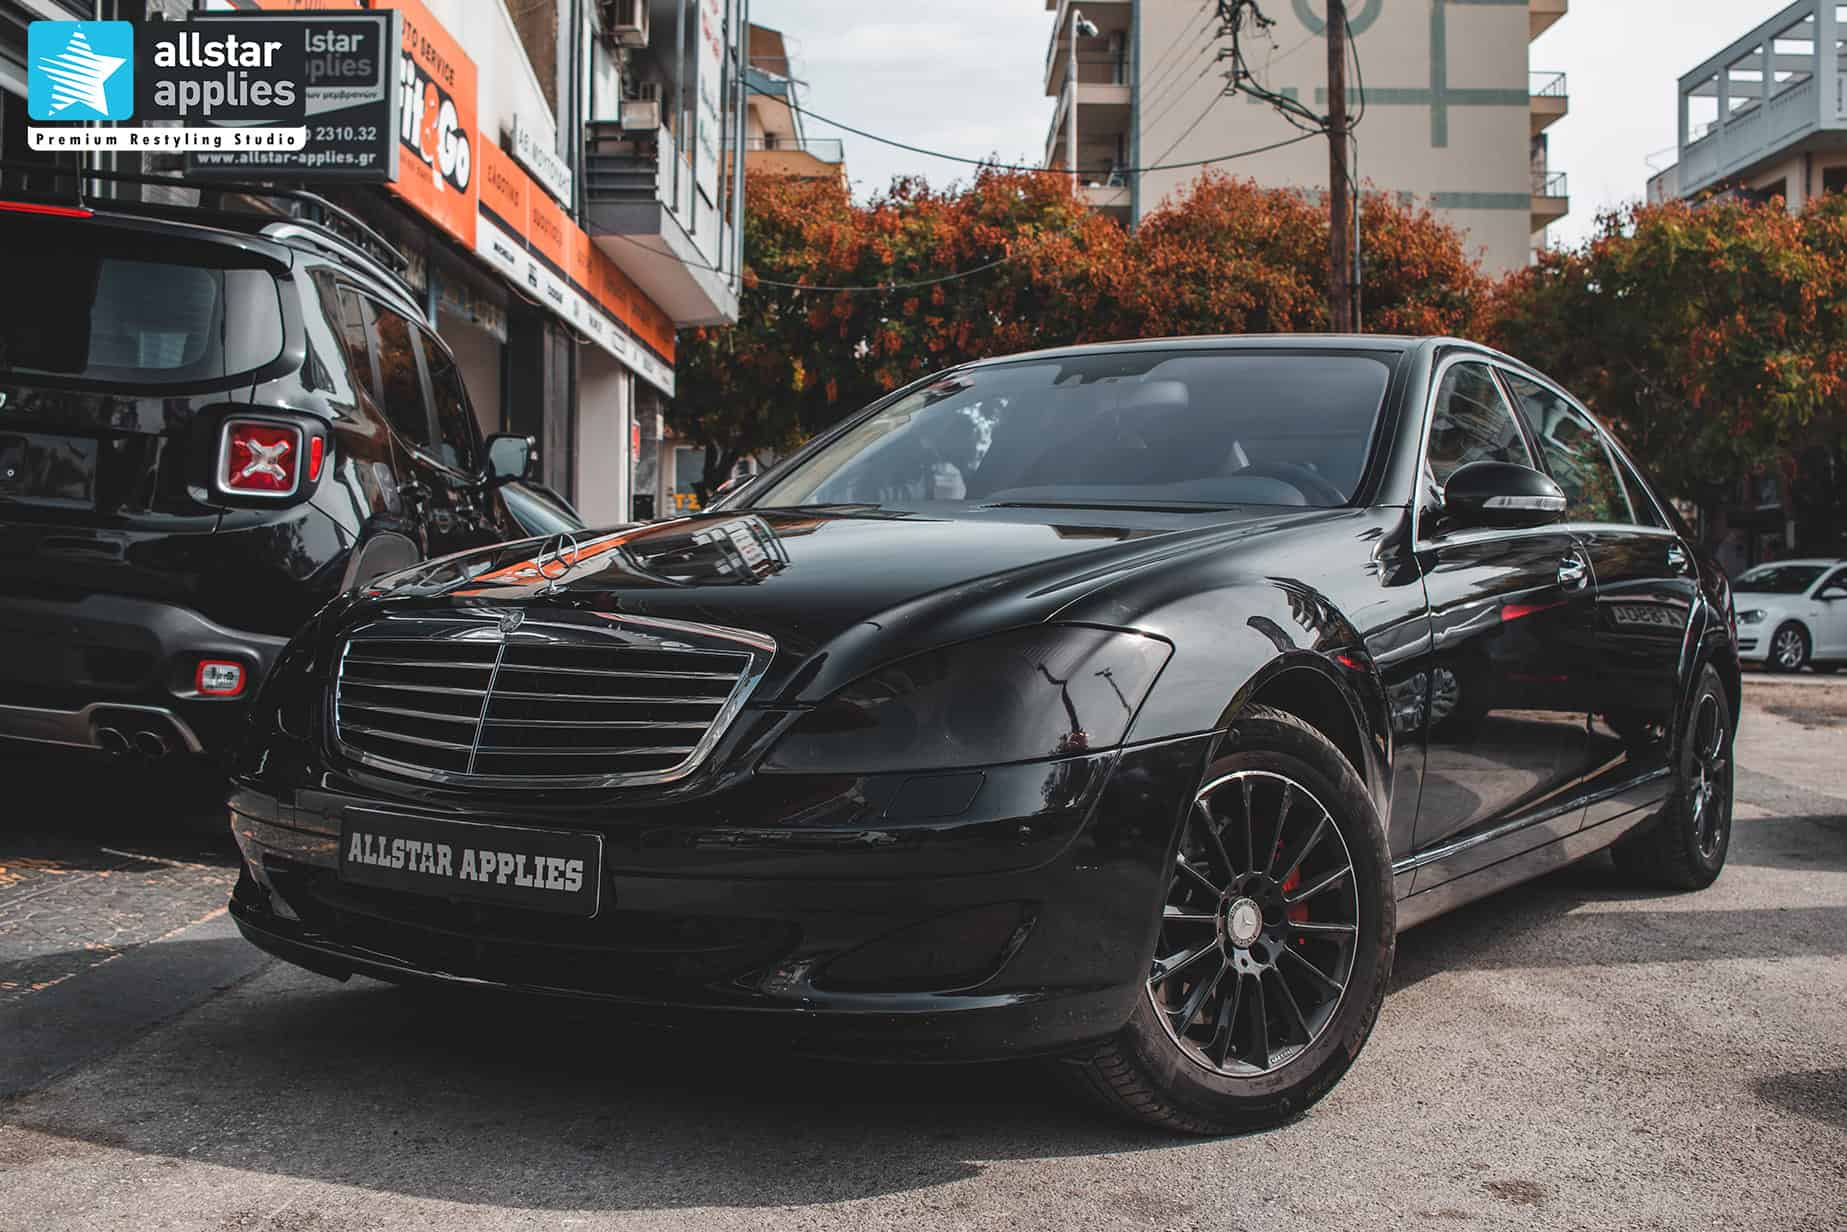 MERCEDES-BENZ-SCLASS-DARK-SMOKE-1